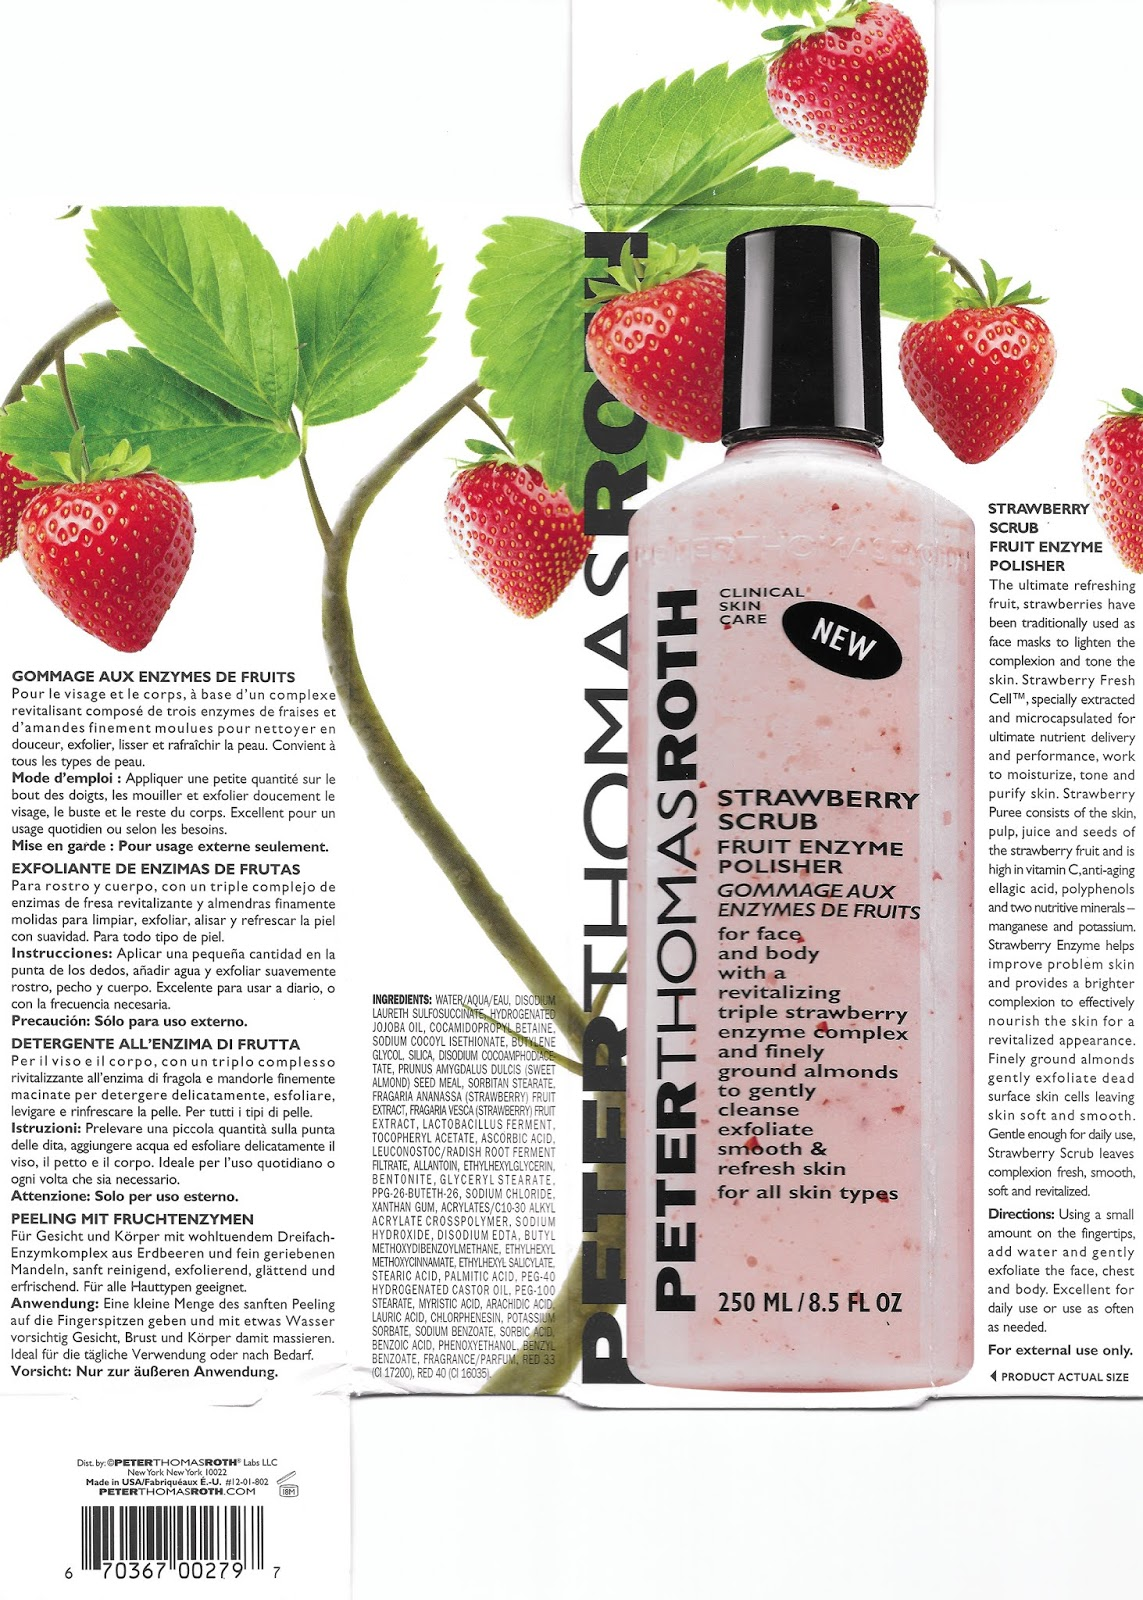 lavlilacs Peter Thomas Roth Strawberry Scrub Fruit Enzyme Polisher packaging ingredients description